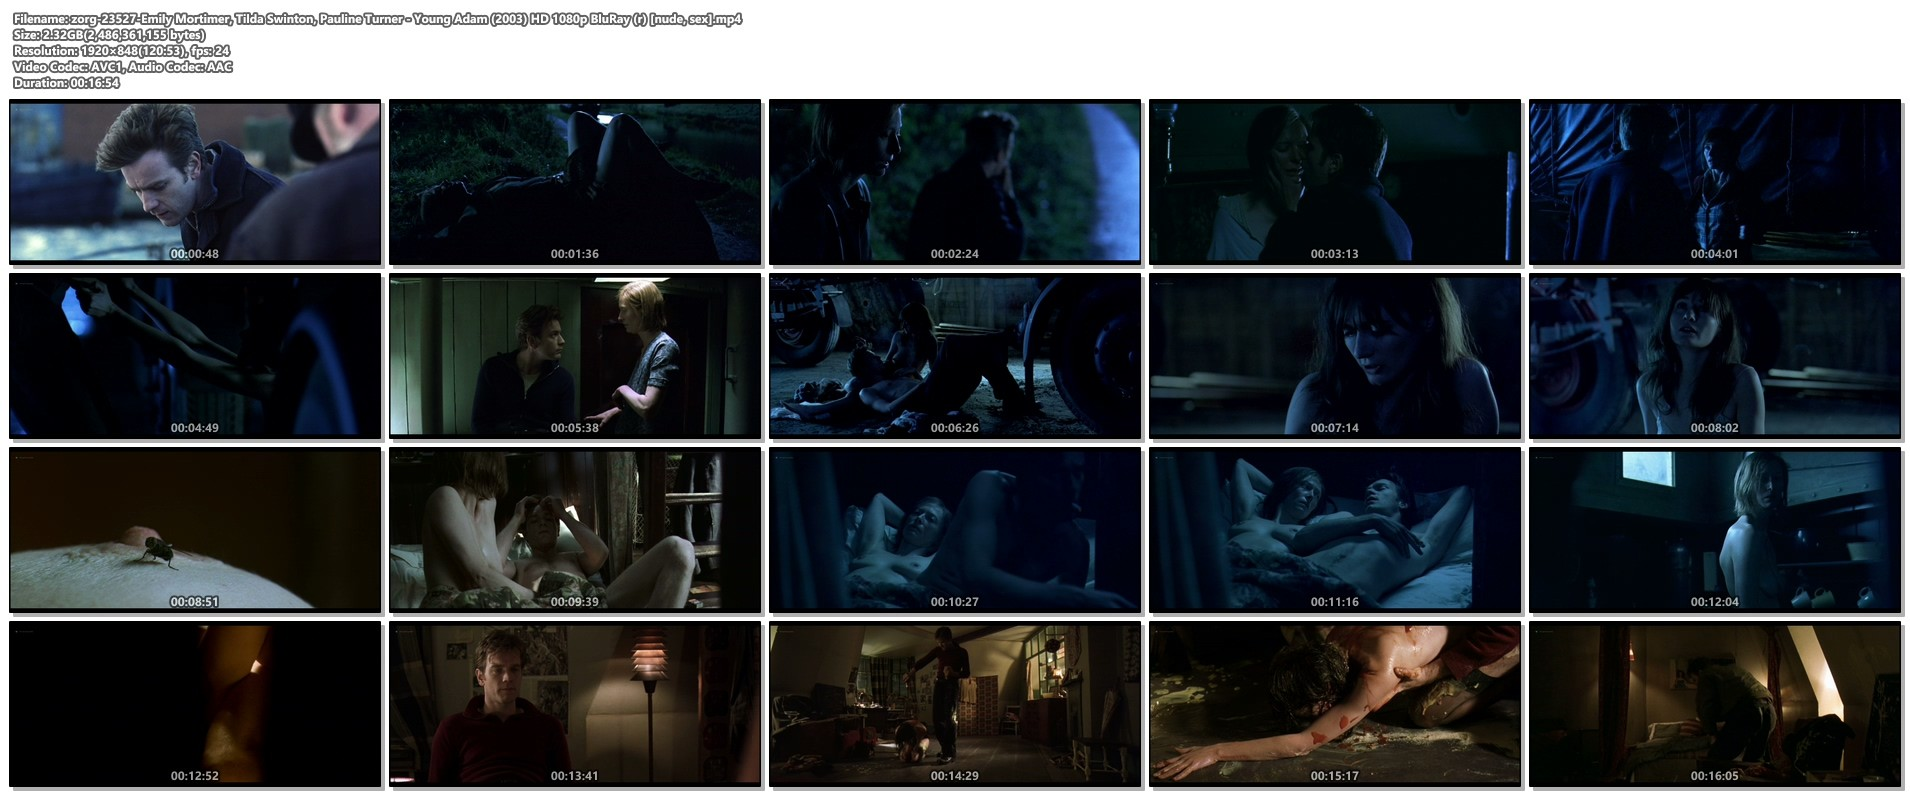 Emily Mortimer nude Tilda Swinton and Pauline Turner nude full frontal - Young Adam (2003) HD 1080p BluRay (1)